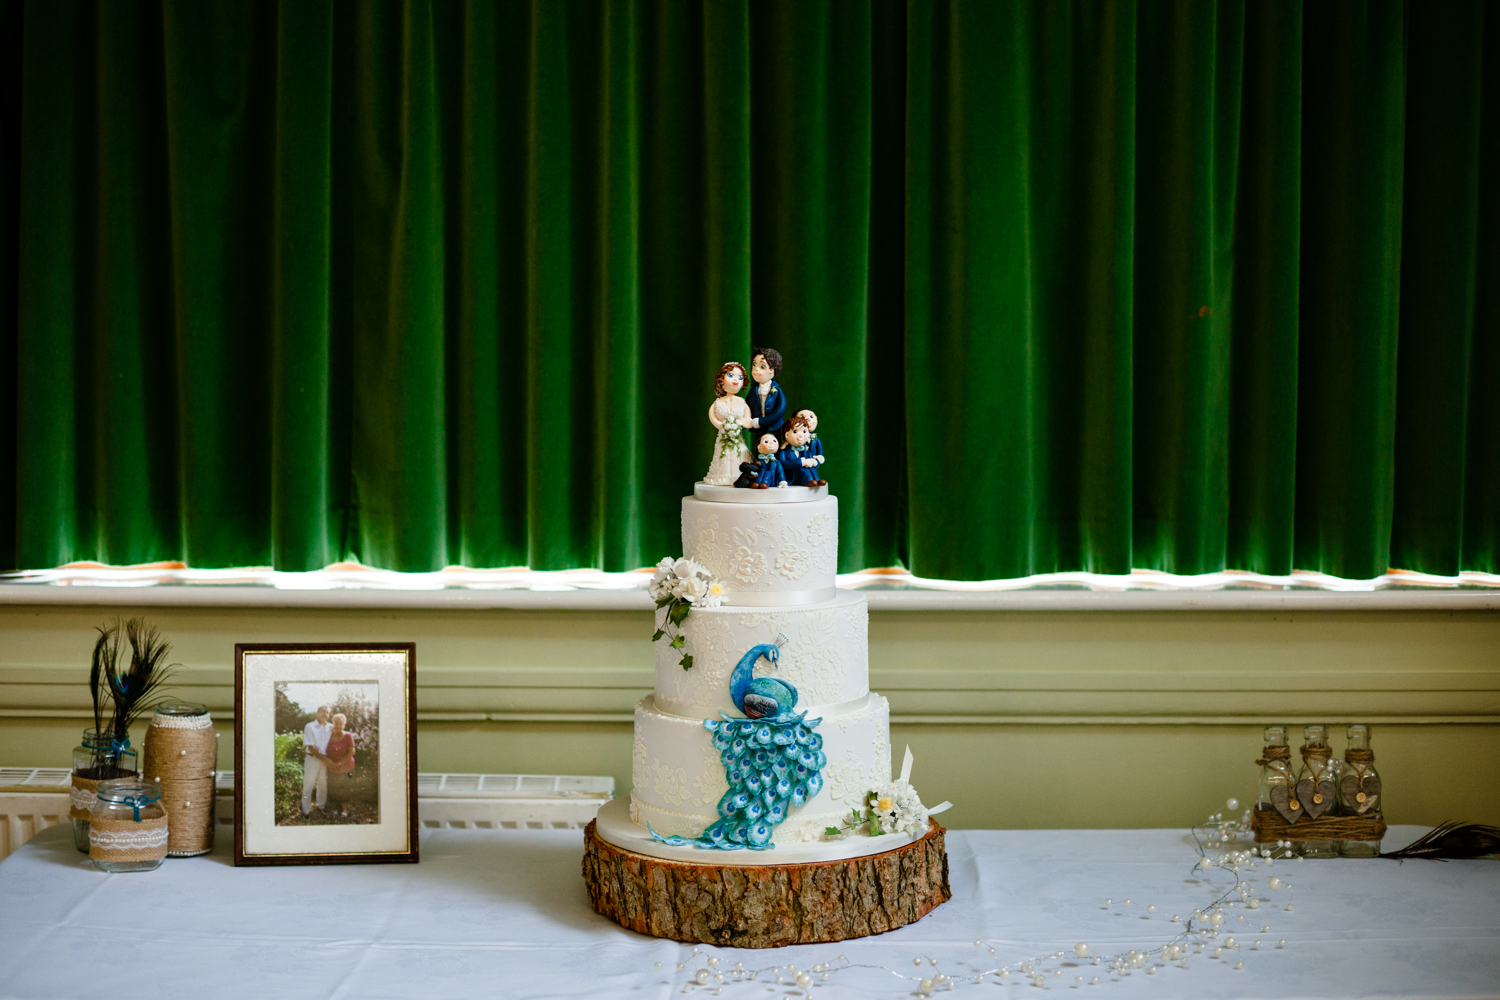 Lancashire-wedding-photographer-adele-and-alex-084.jpg